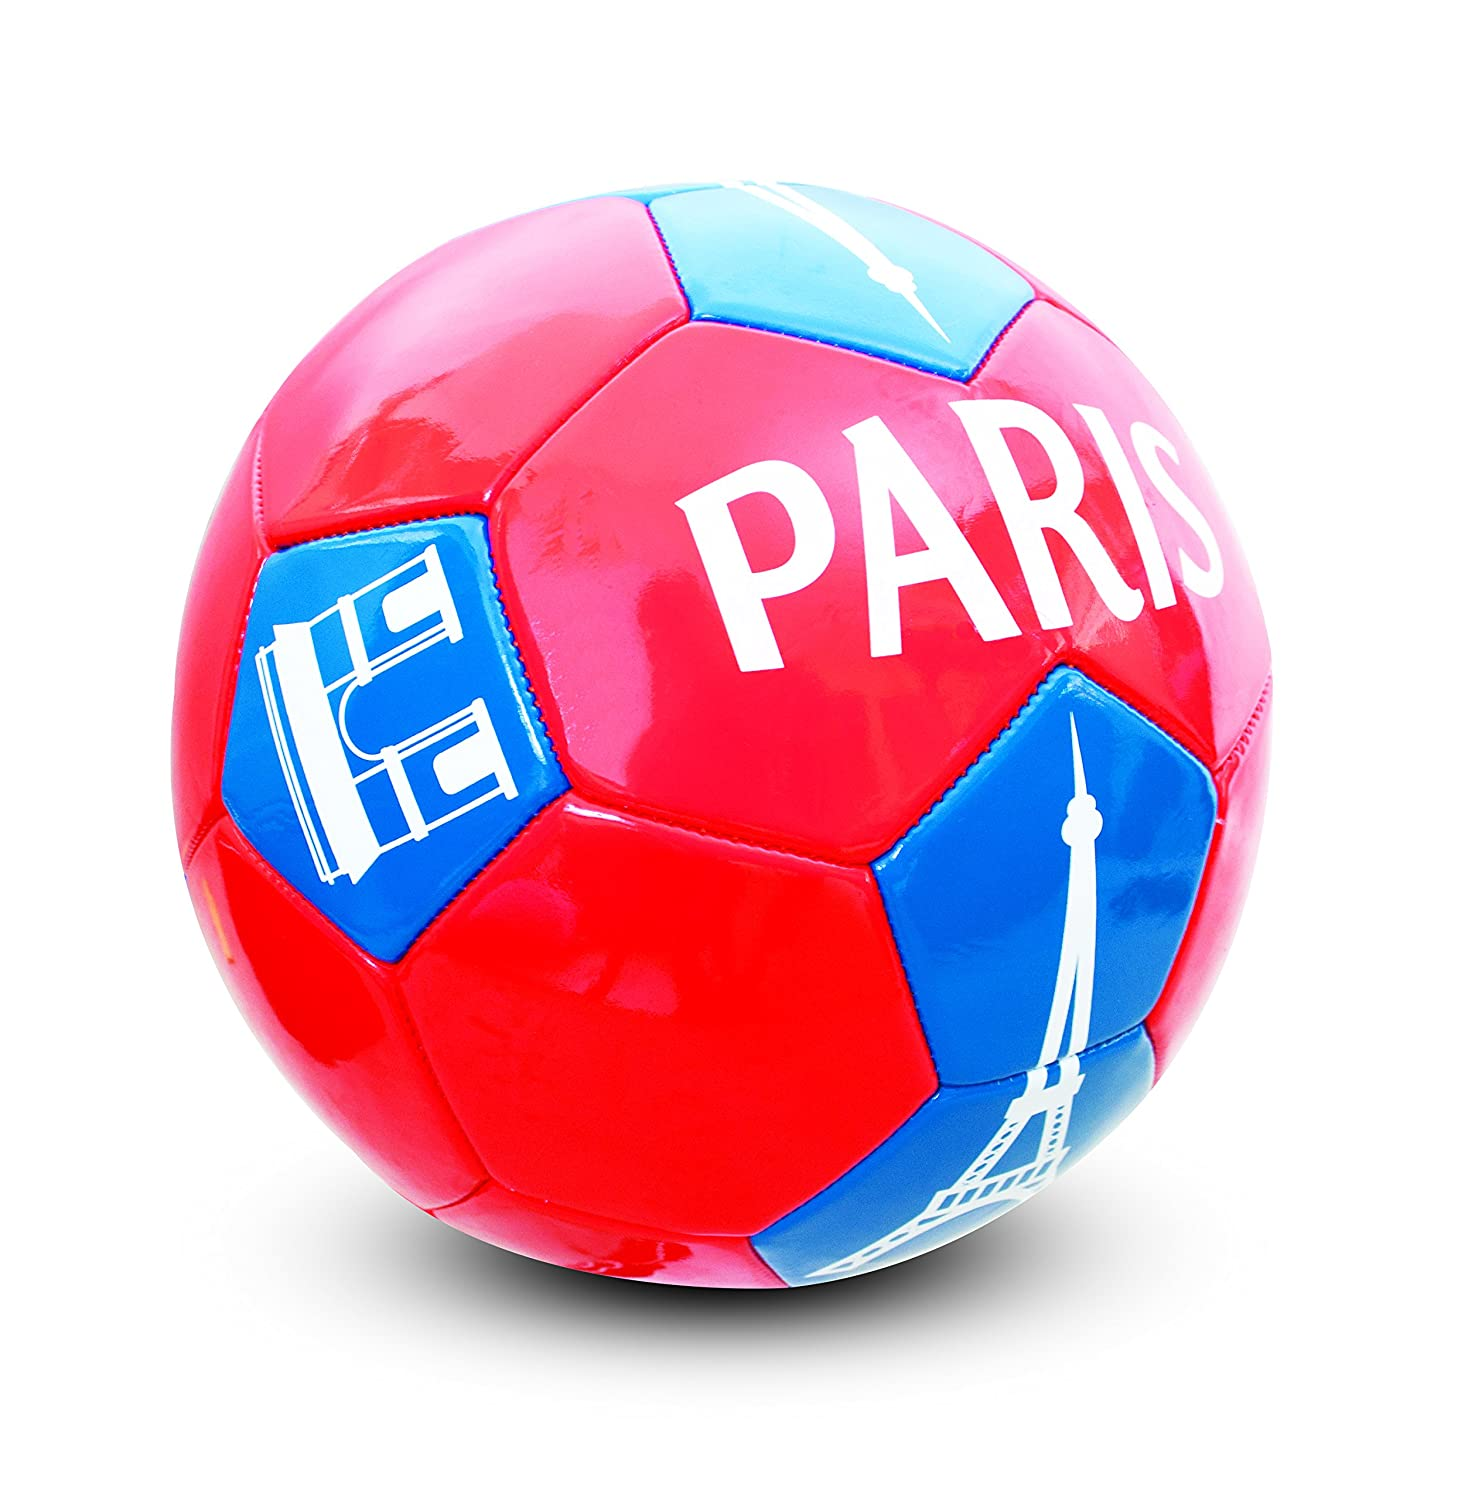 HOLISPORT - HP04594 - Ballon de Football 'Paris' - Mixte - Multicolore (Rouge/Bleu) - Taille: 1 HOM1W|#HOLISPORT